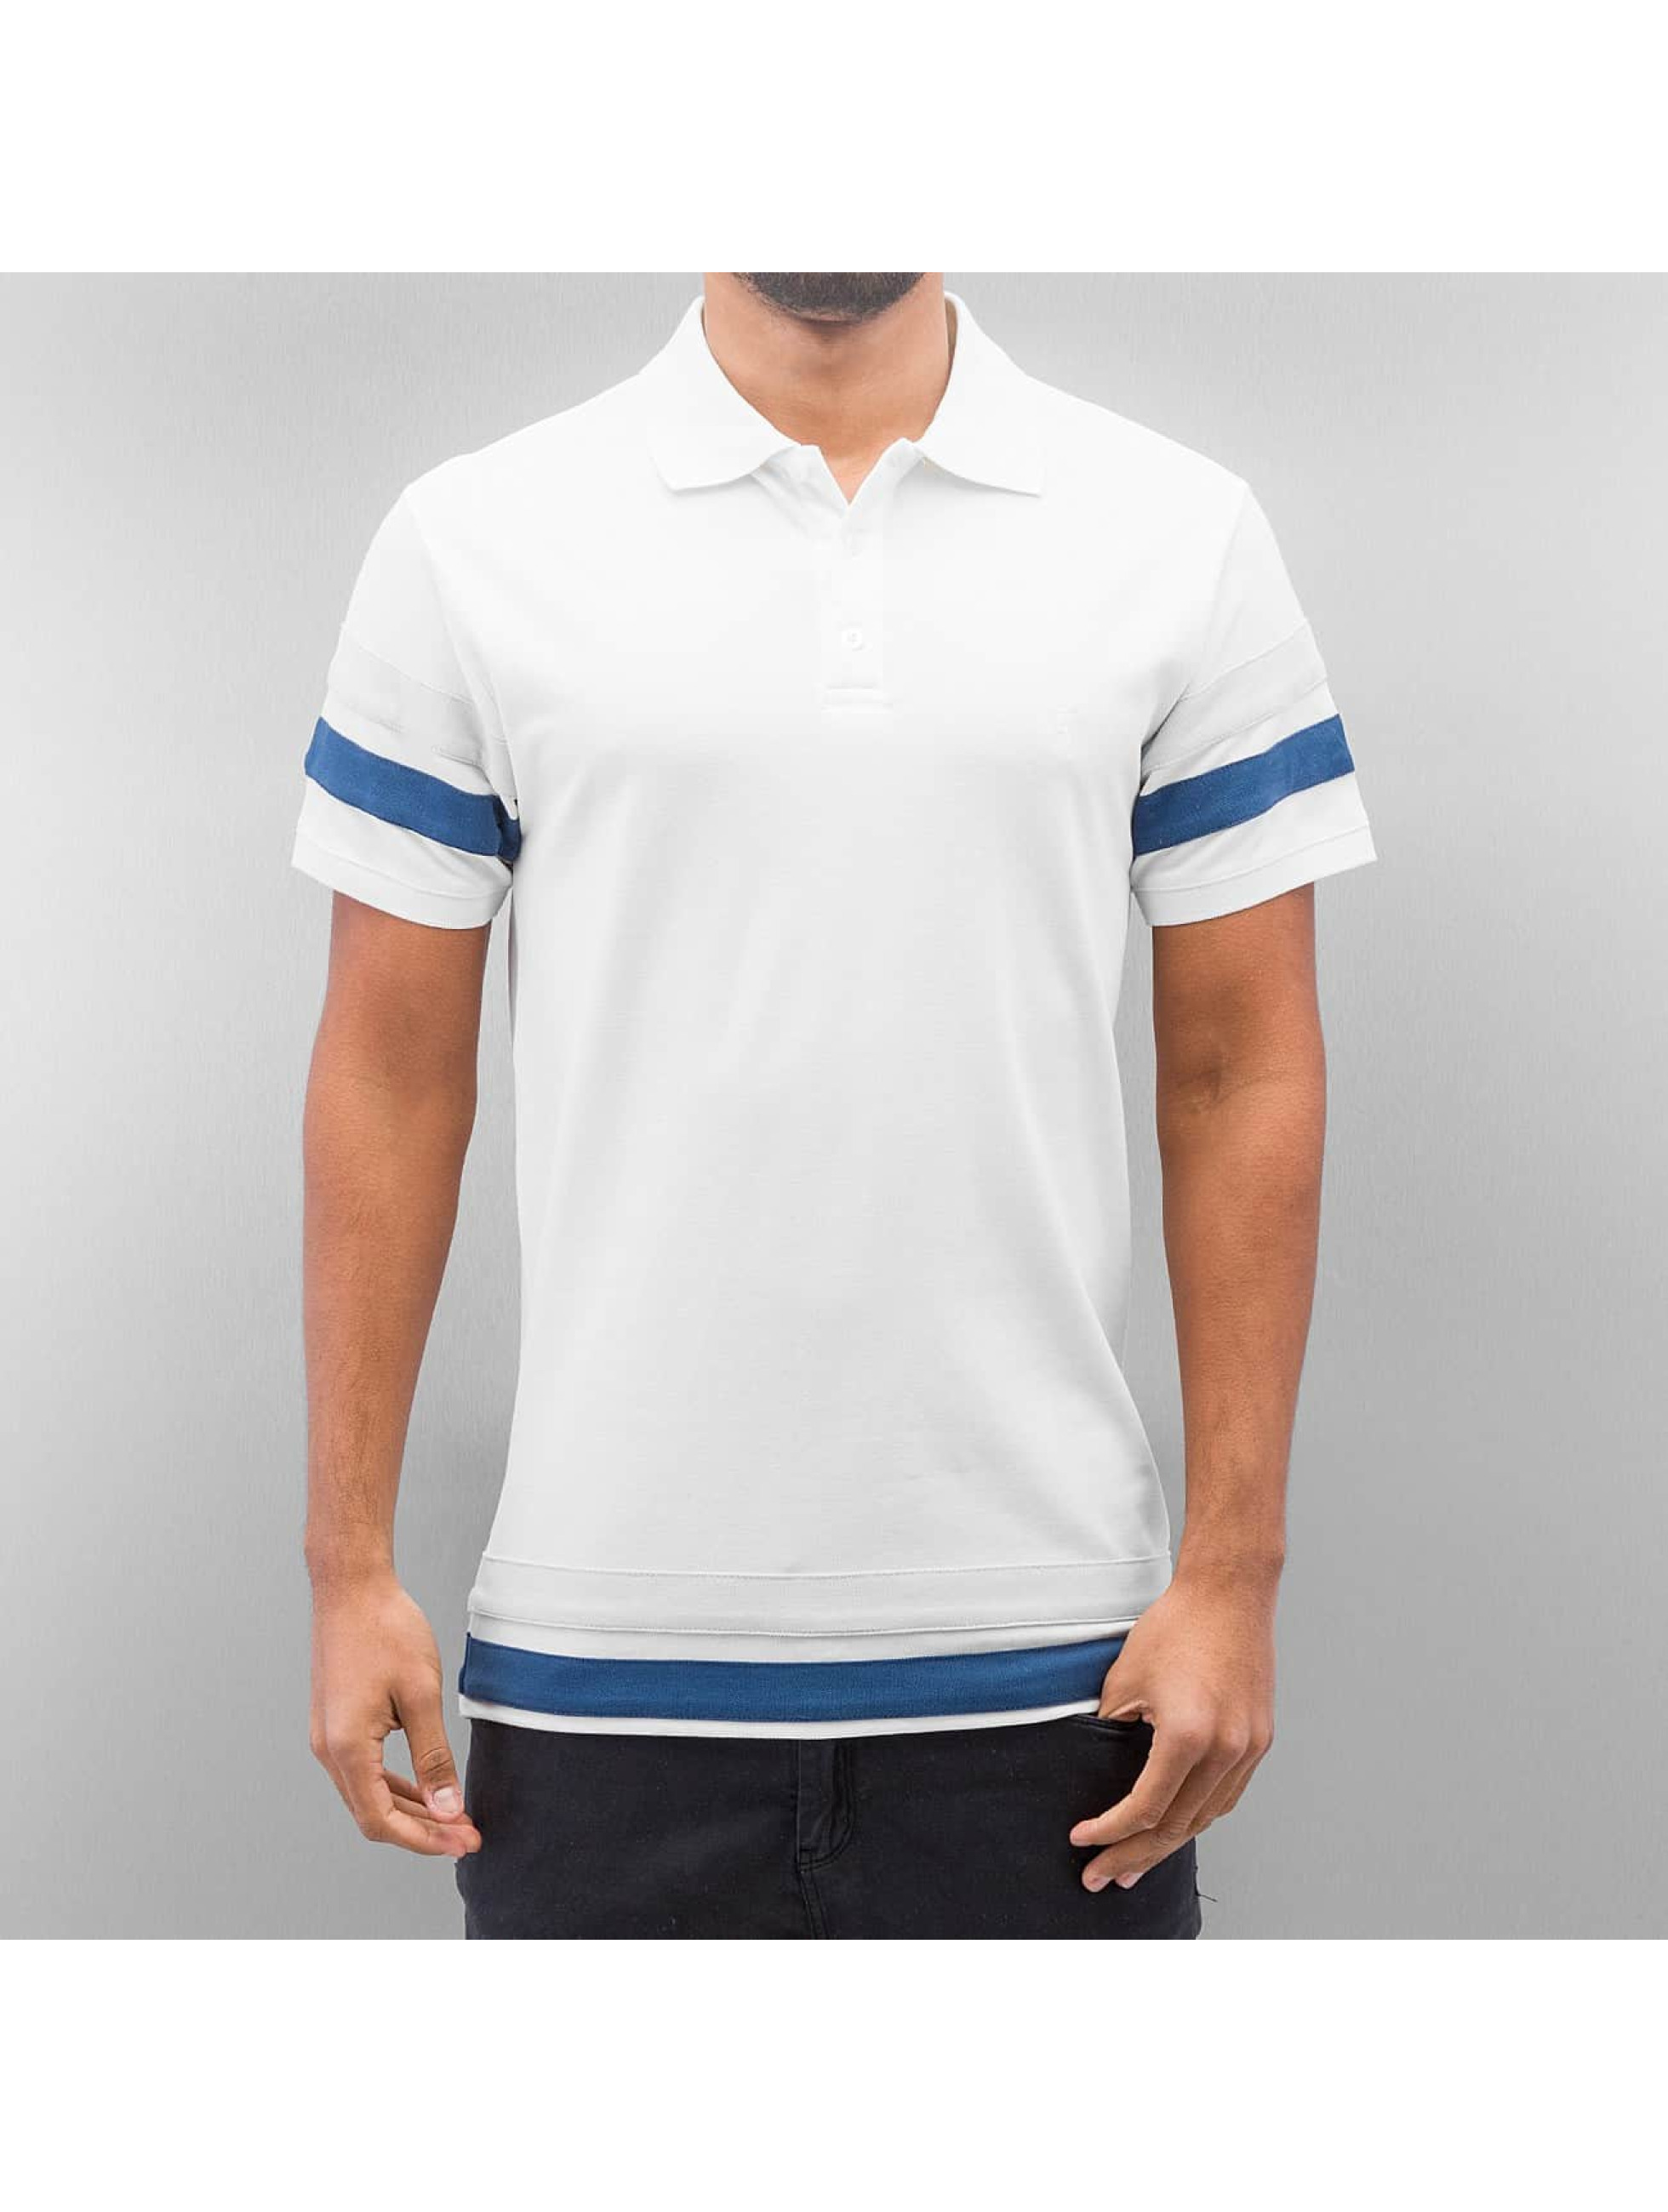 Cazzy Clang poloshirt Migge wit